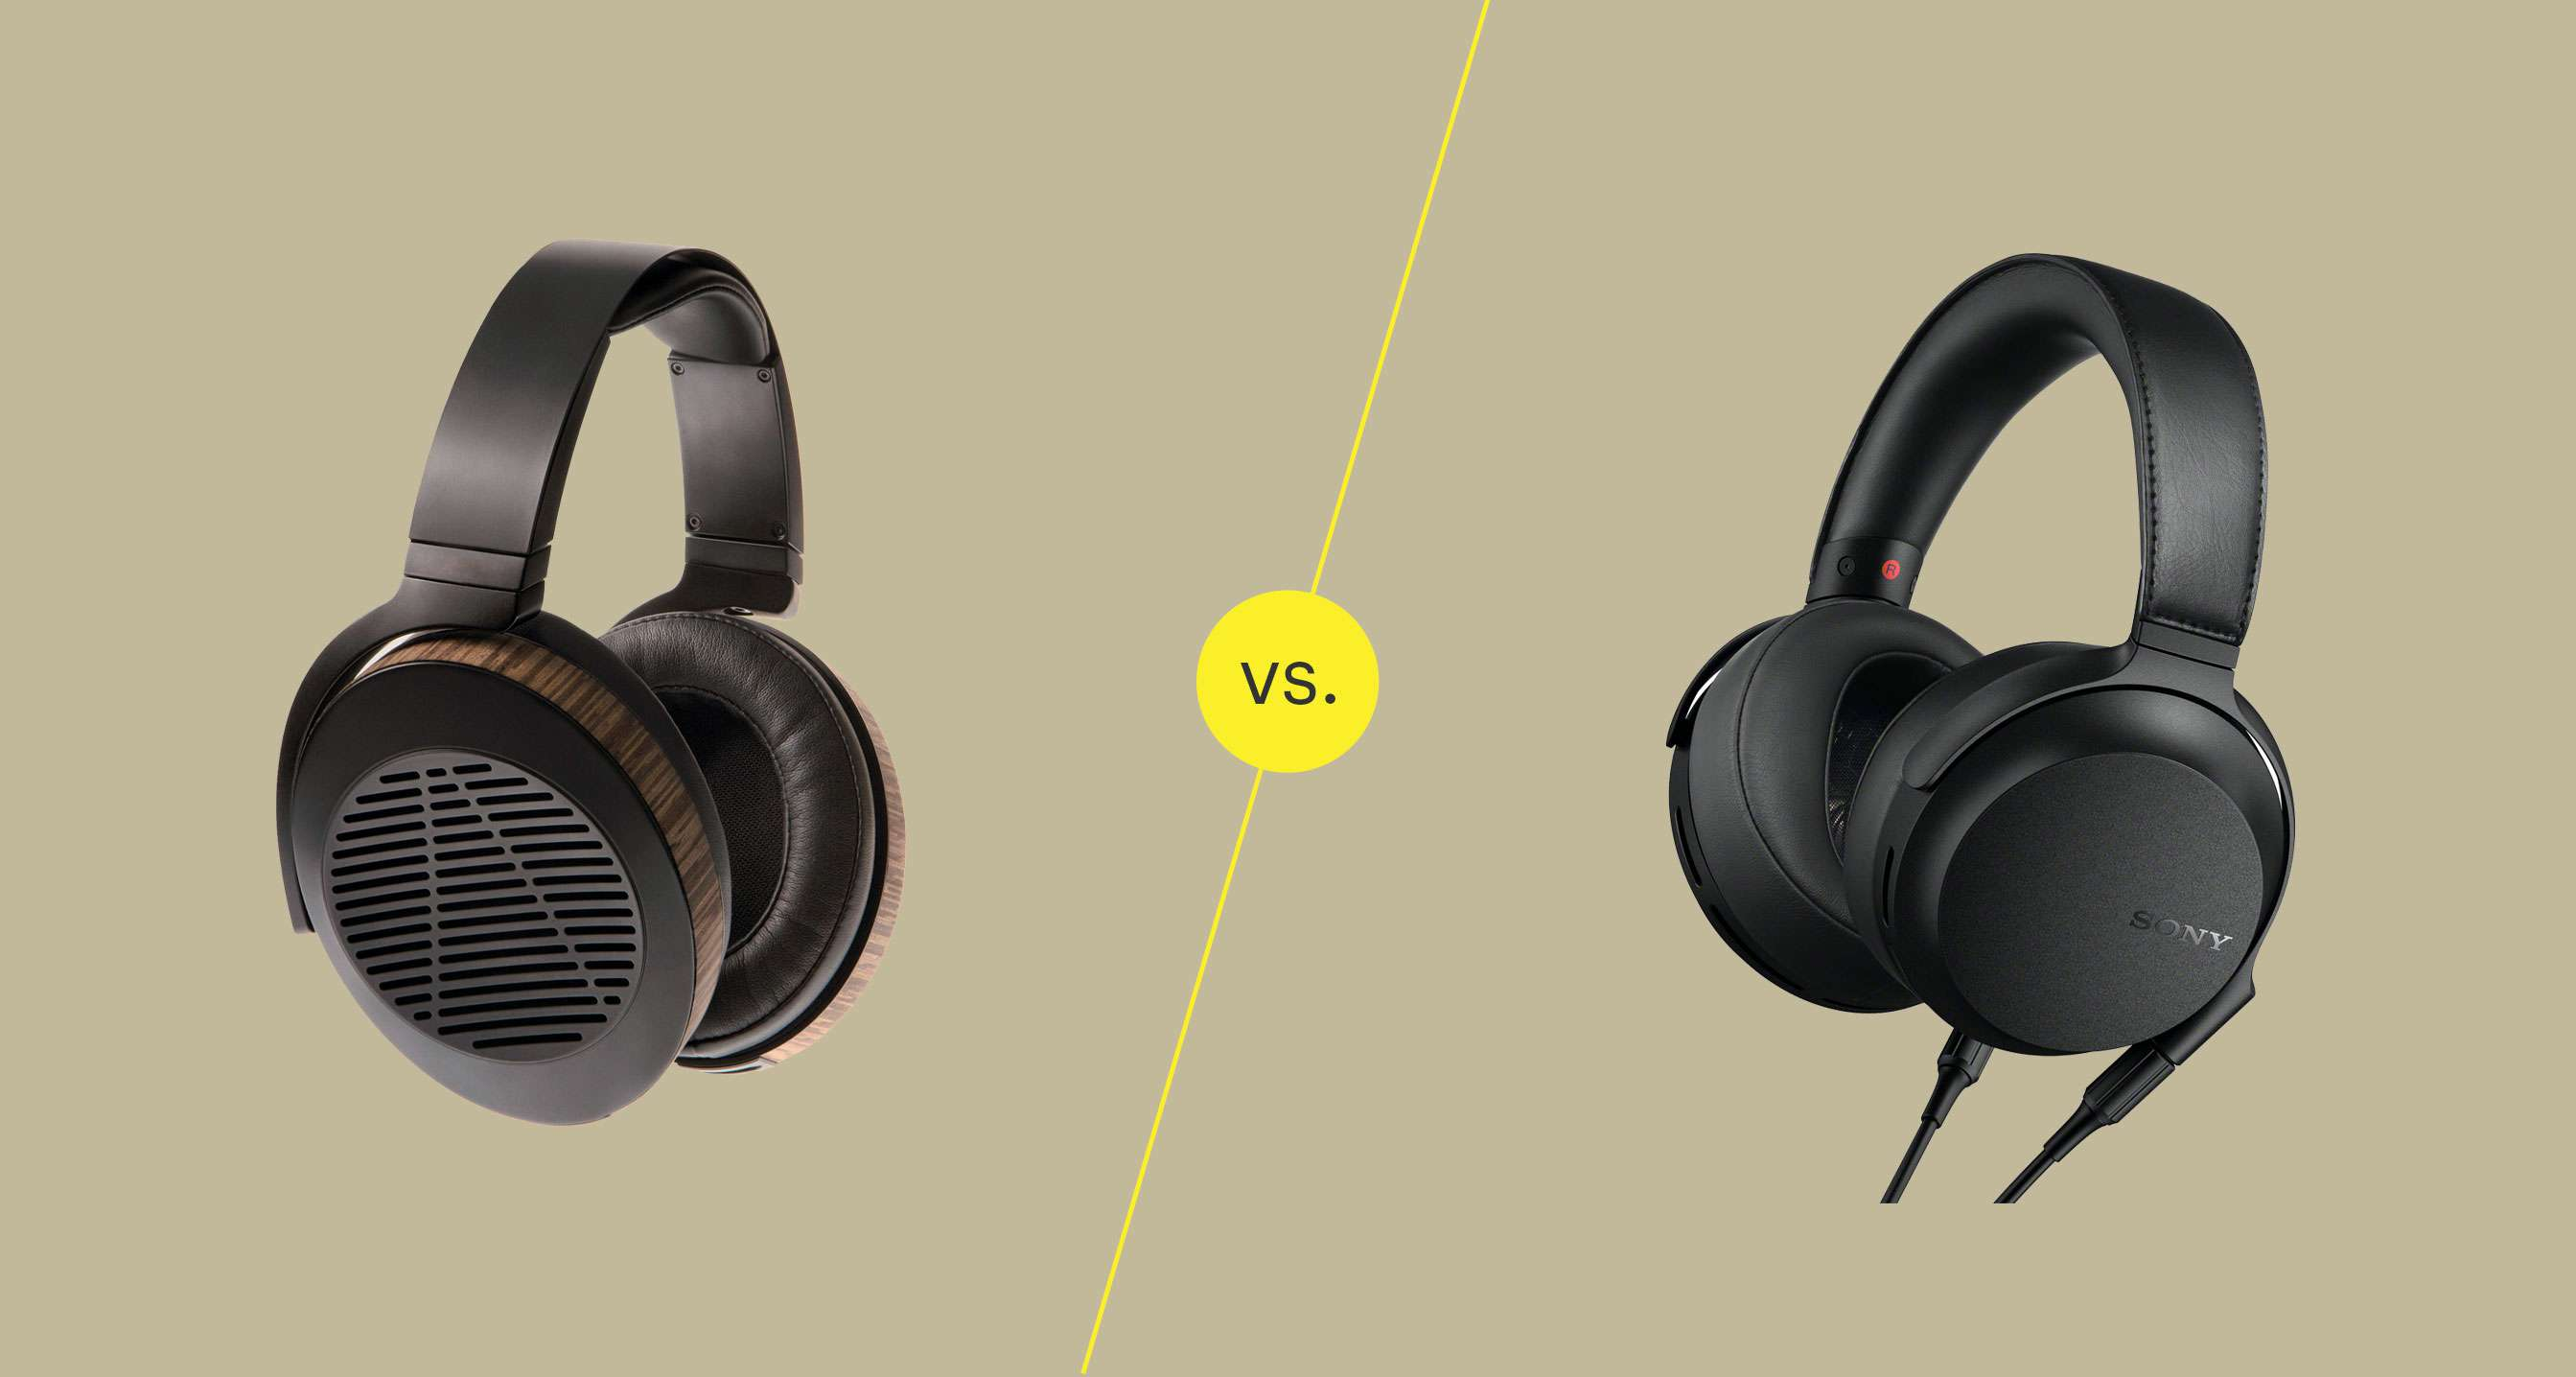 Open-back vs Closed-back microphones